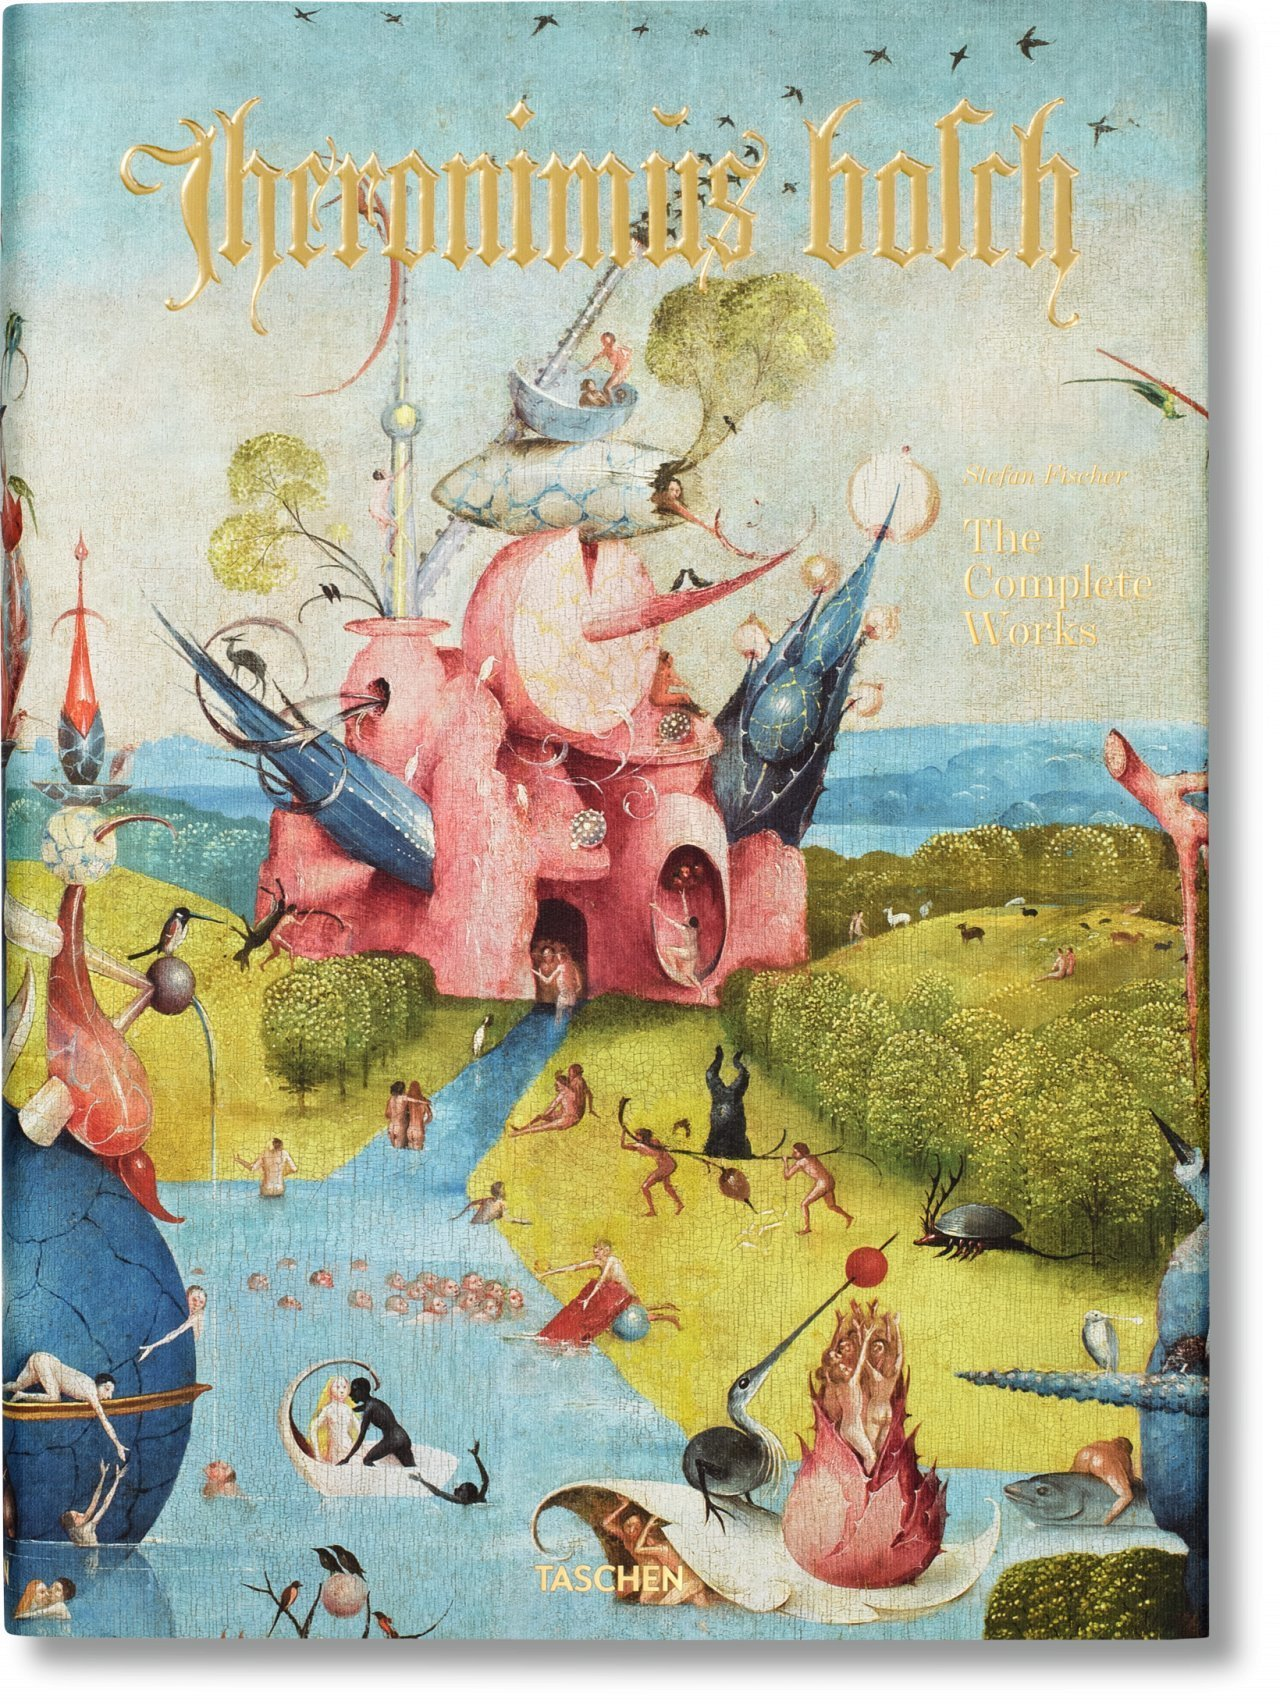 XL-HIERONYMUS BOSCH L'OEUVRE COMPLET GB